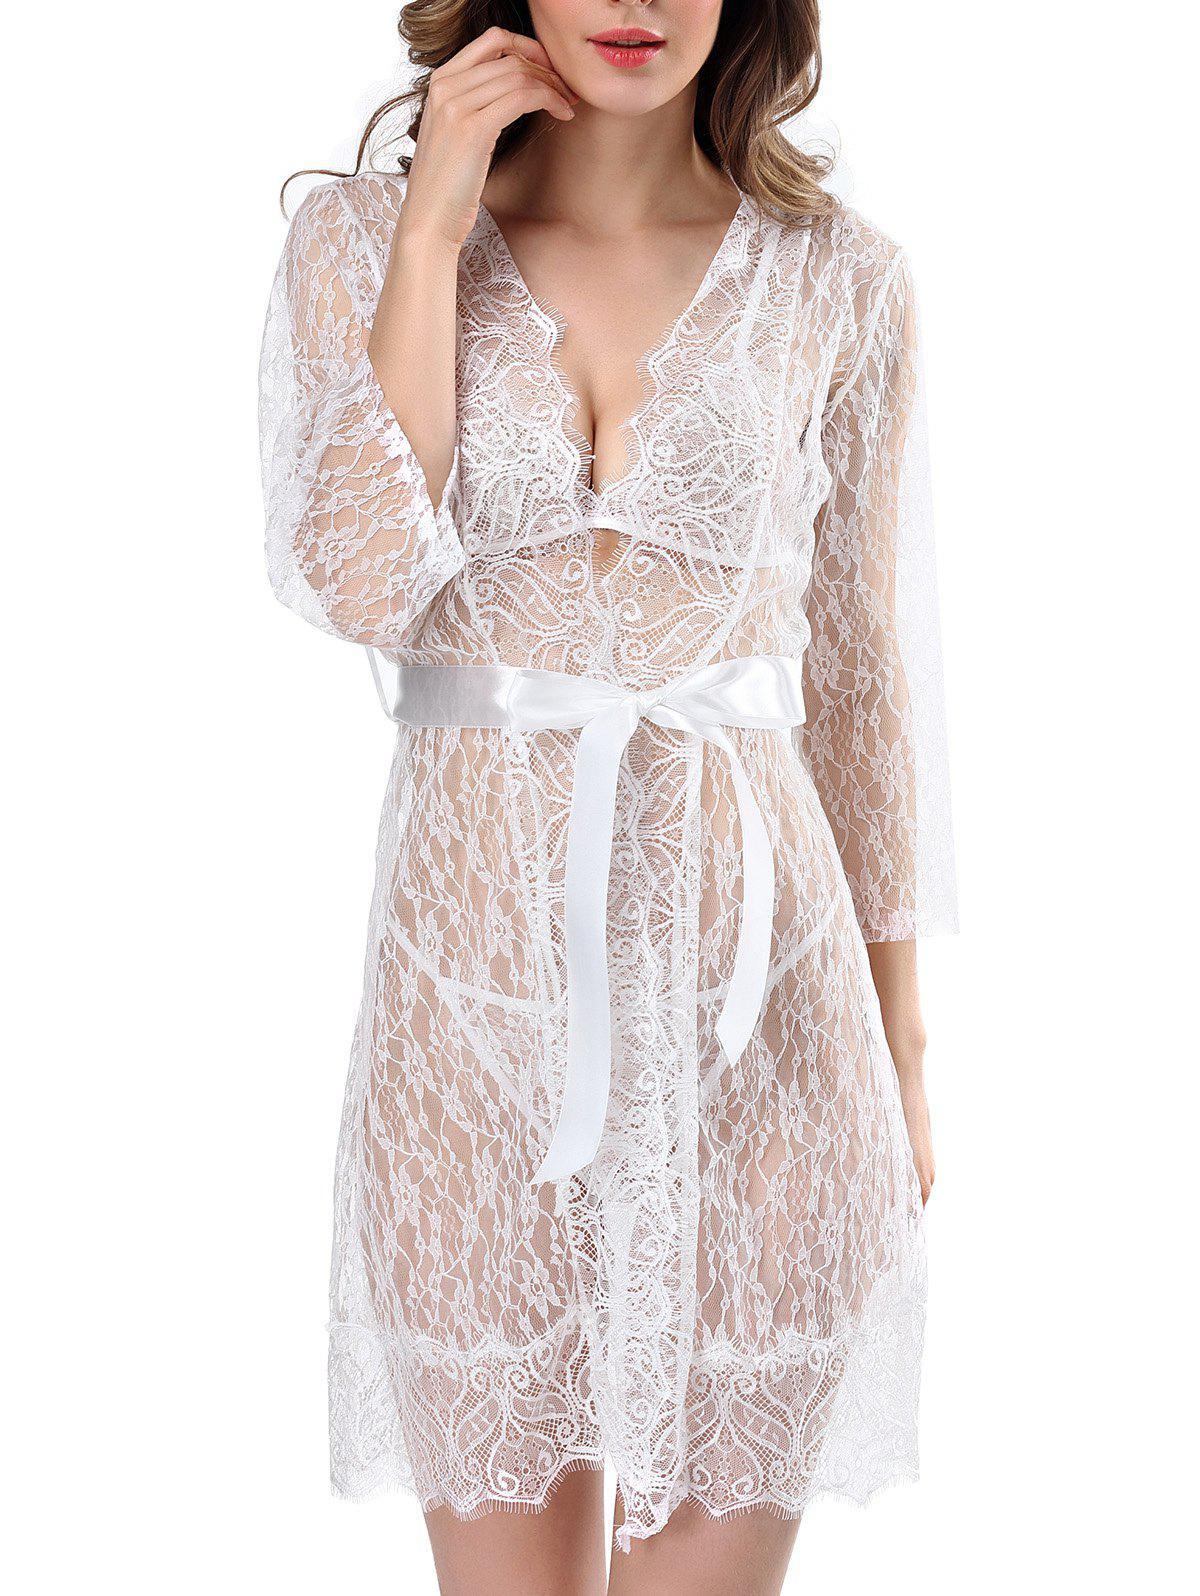 Online Three Pieces Lace Bathrobe Babydoll Lingerie